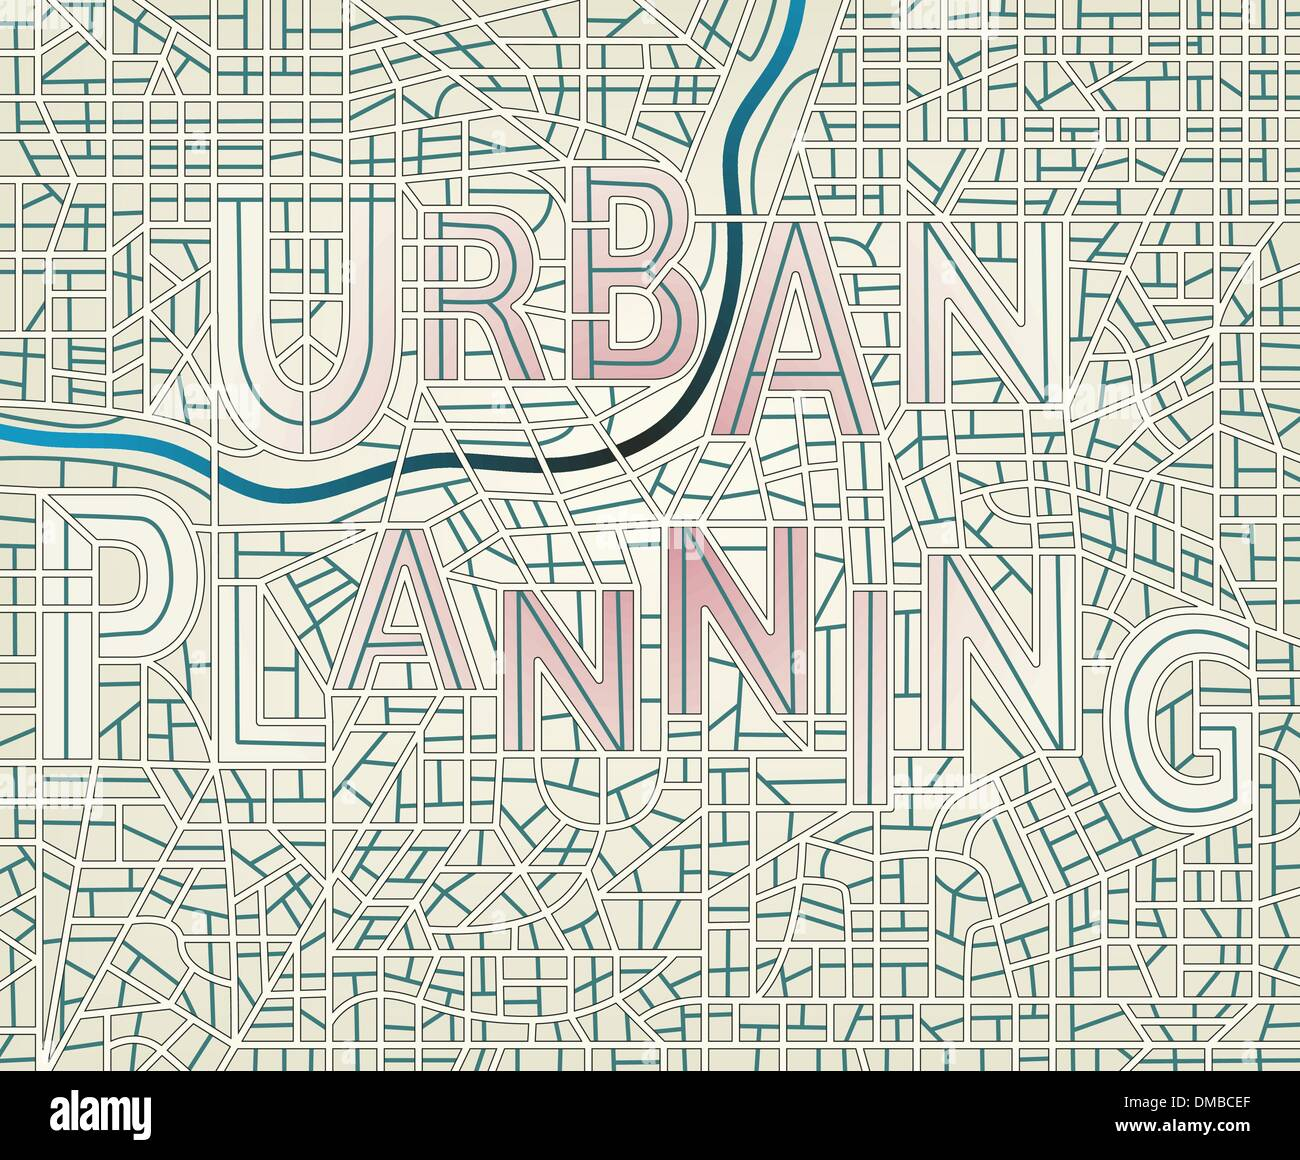 Urban planning - Stock Image